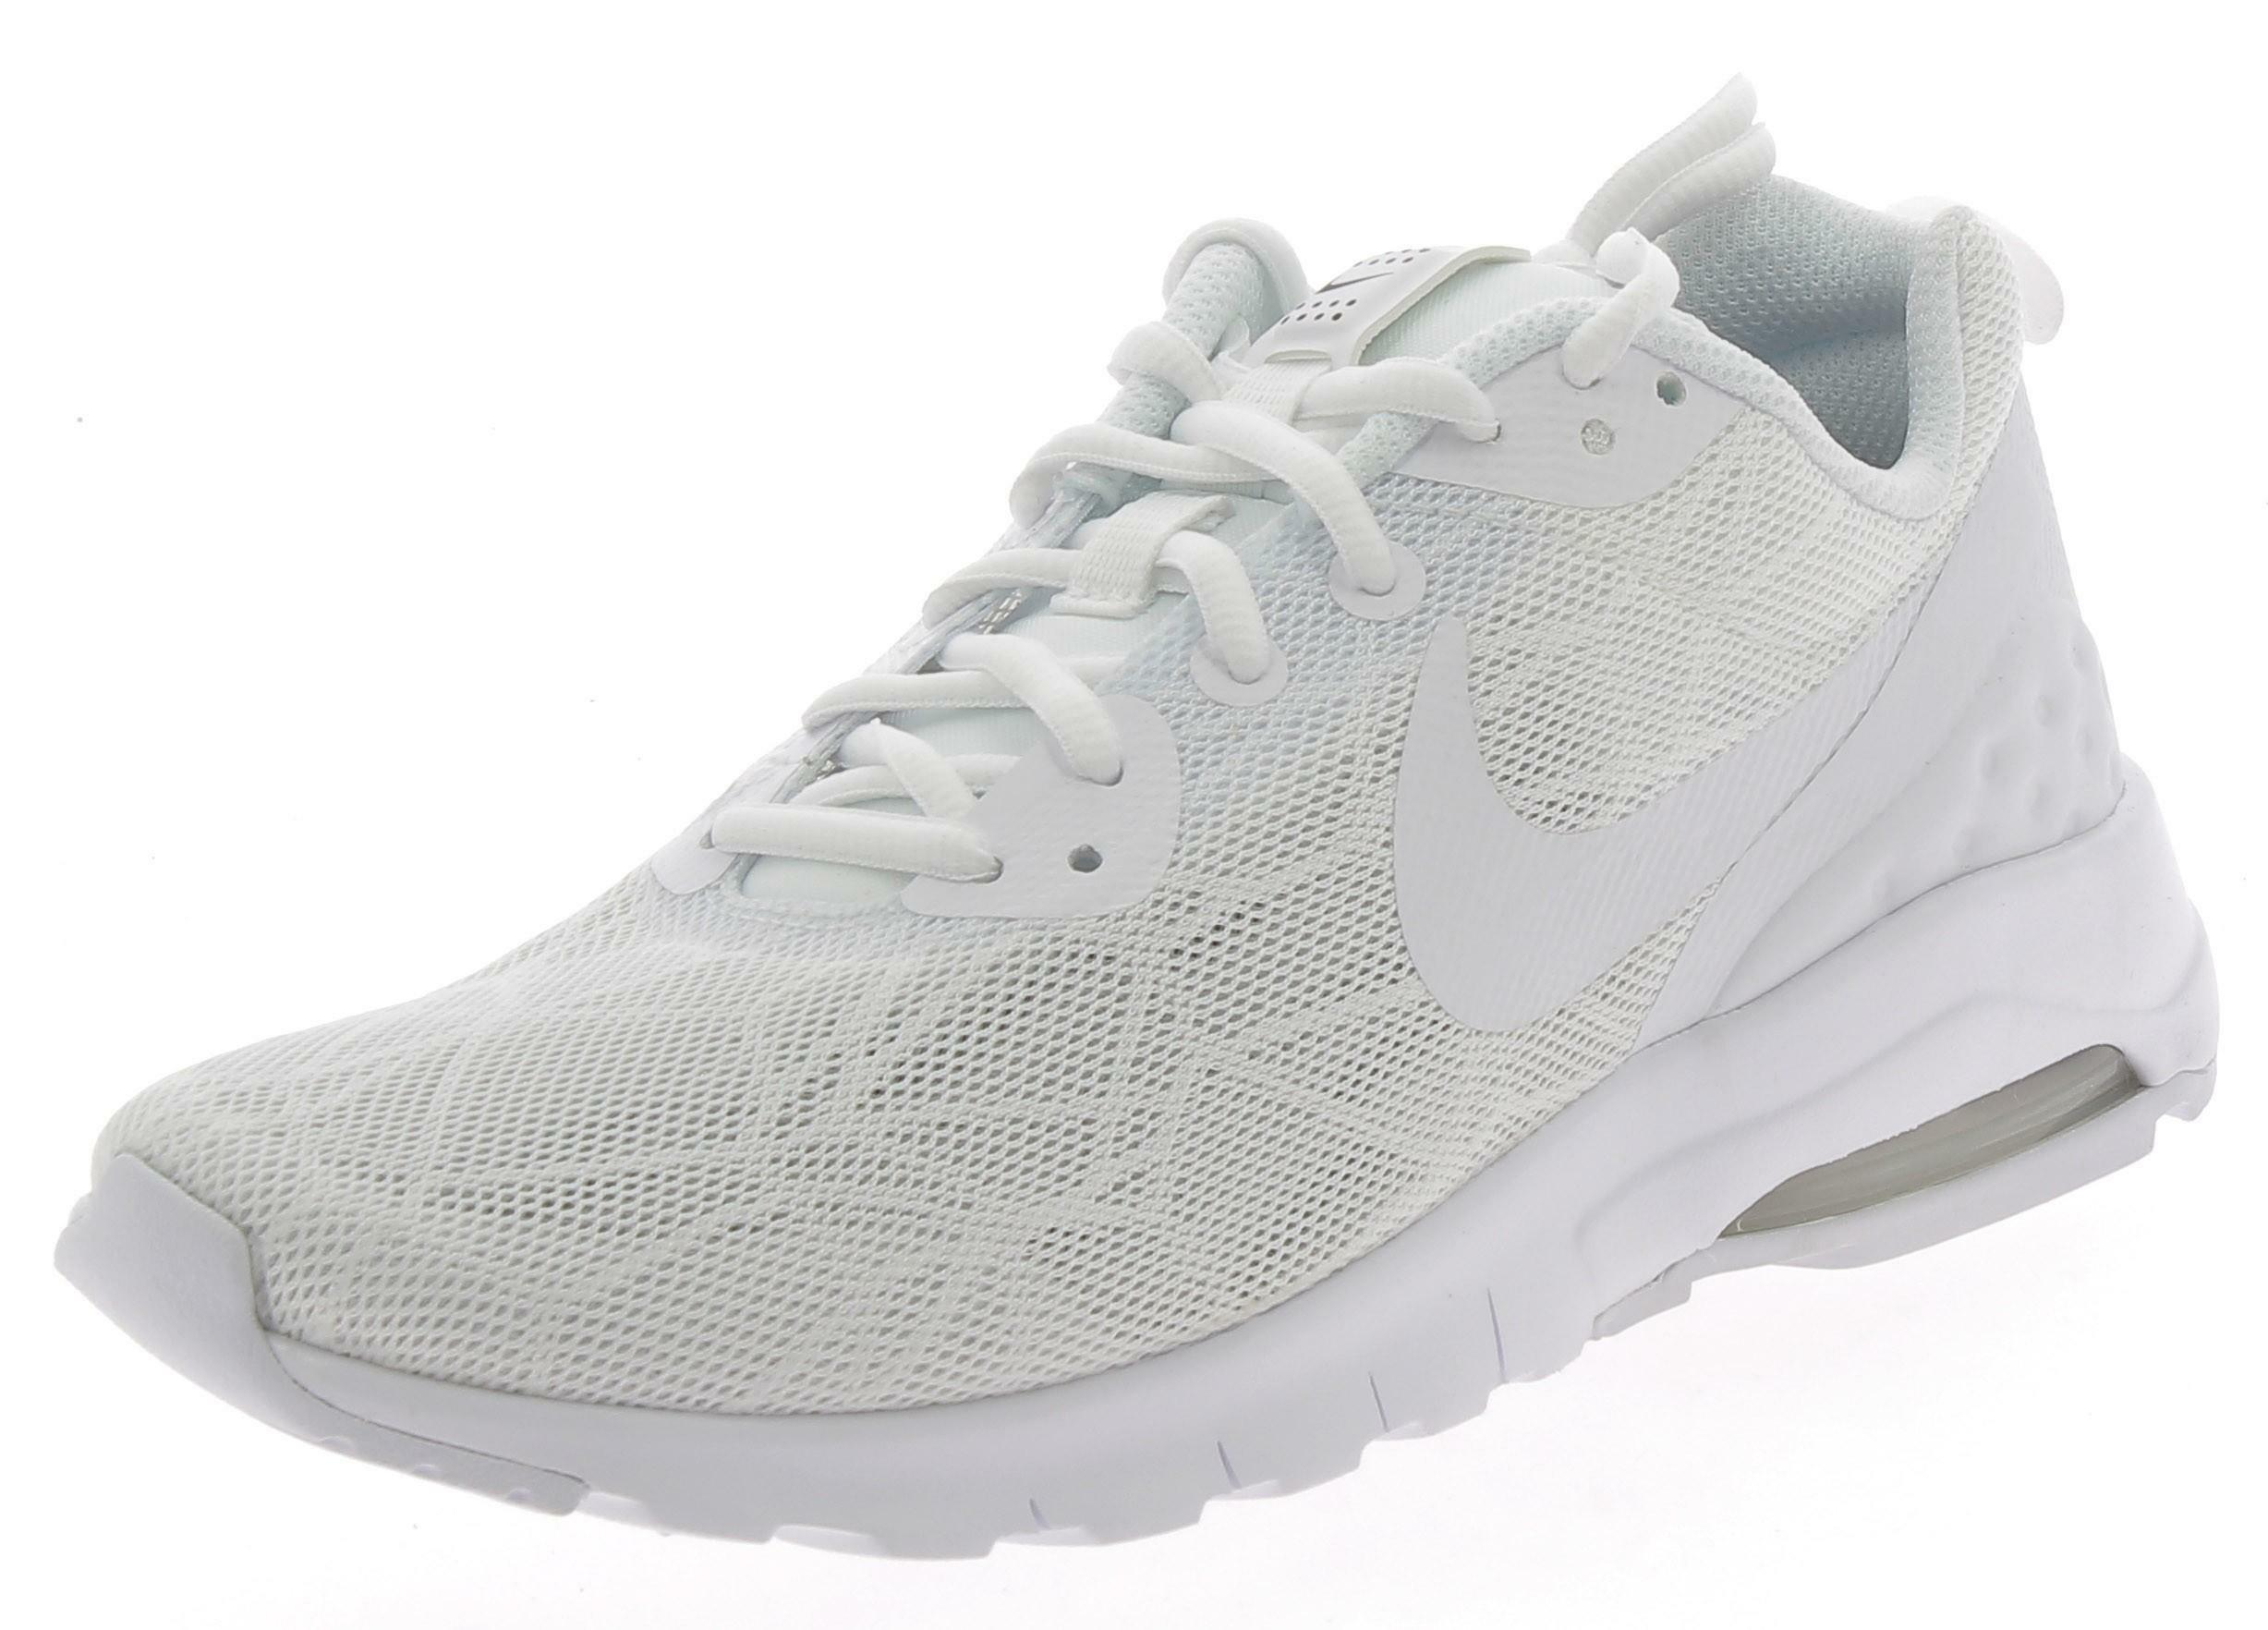 separation shoes 0a6eb be59a Nike Air Max Motion LW SE Scarpe Sportive Donna Bianche 844895101